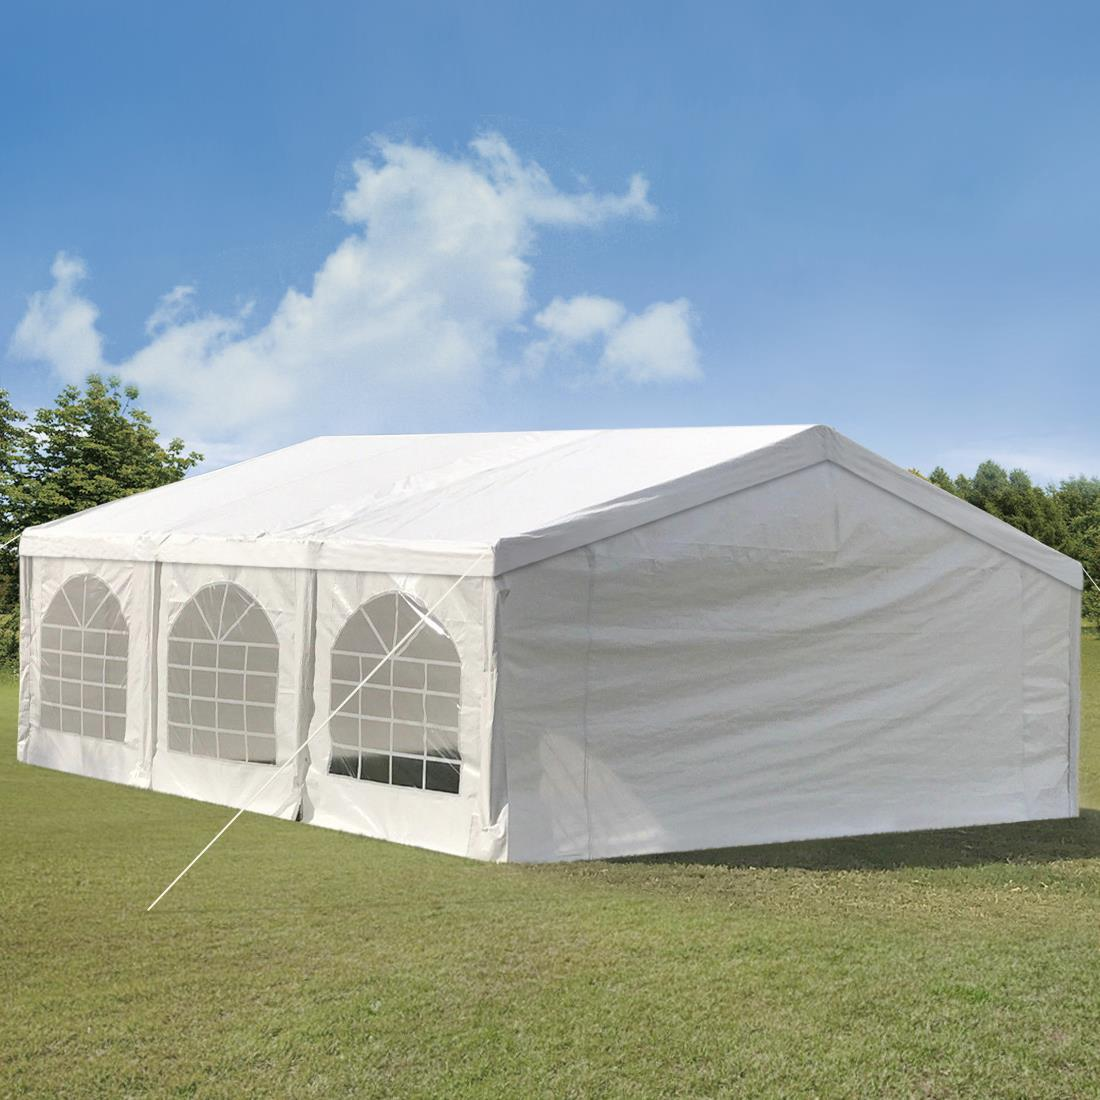 Peaktop-Heavy-Duty-Party-Tent-Event-Canopy-Gazebo-Wedding-Tent-With-Carry-Bag thumbnail 9